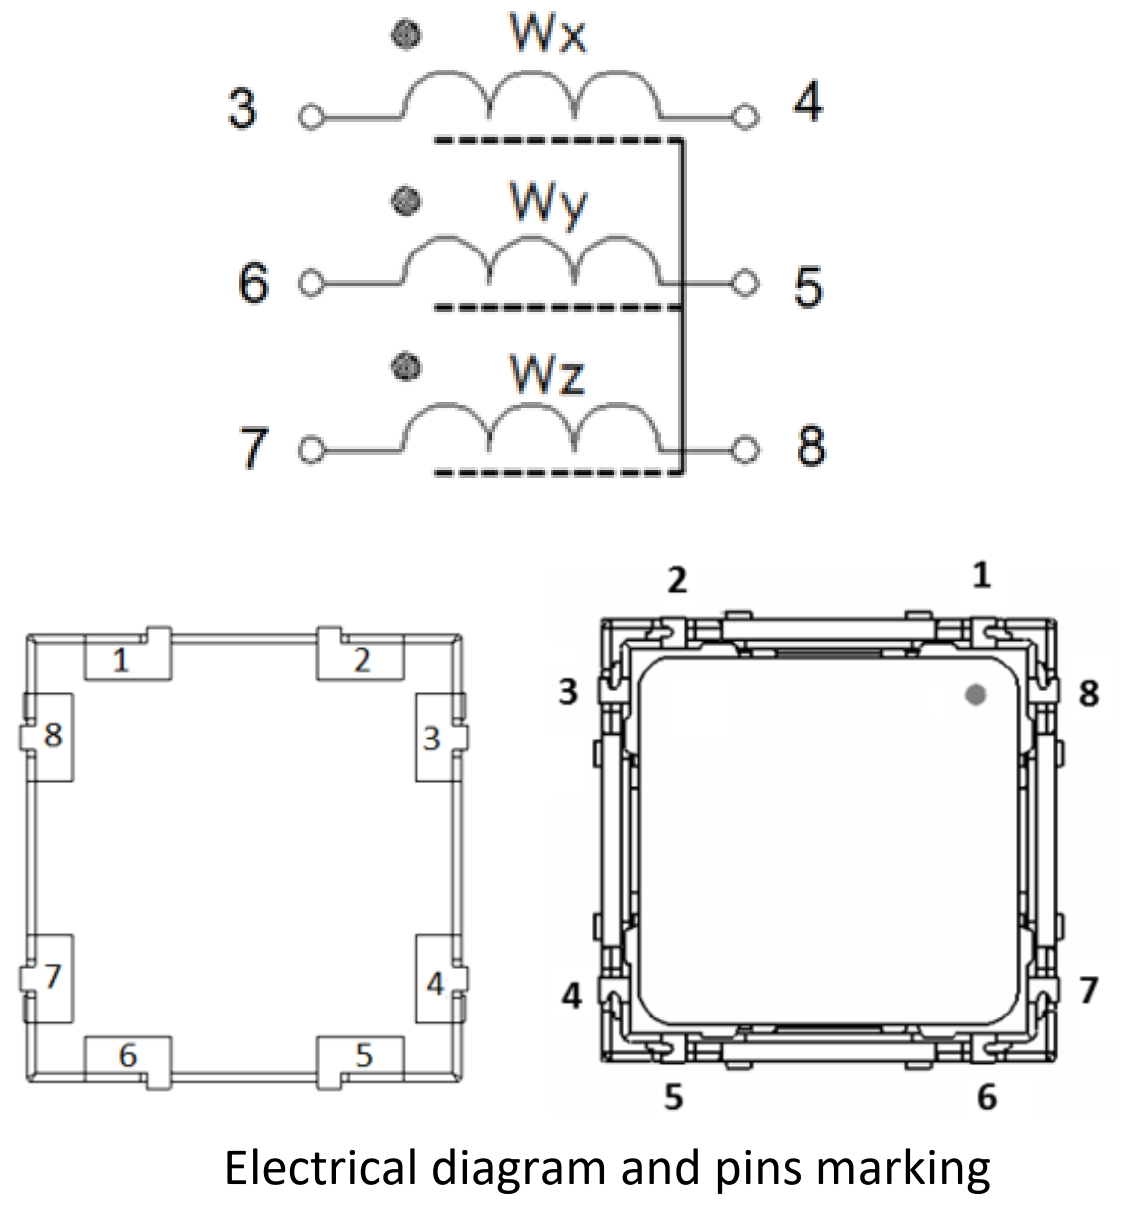 3DC14S electrical diagram